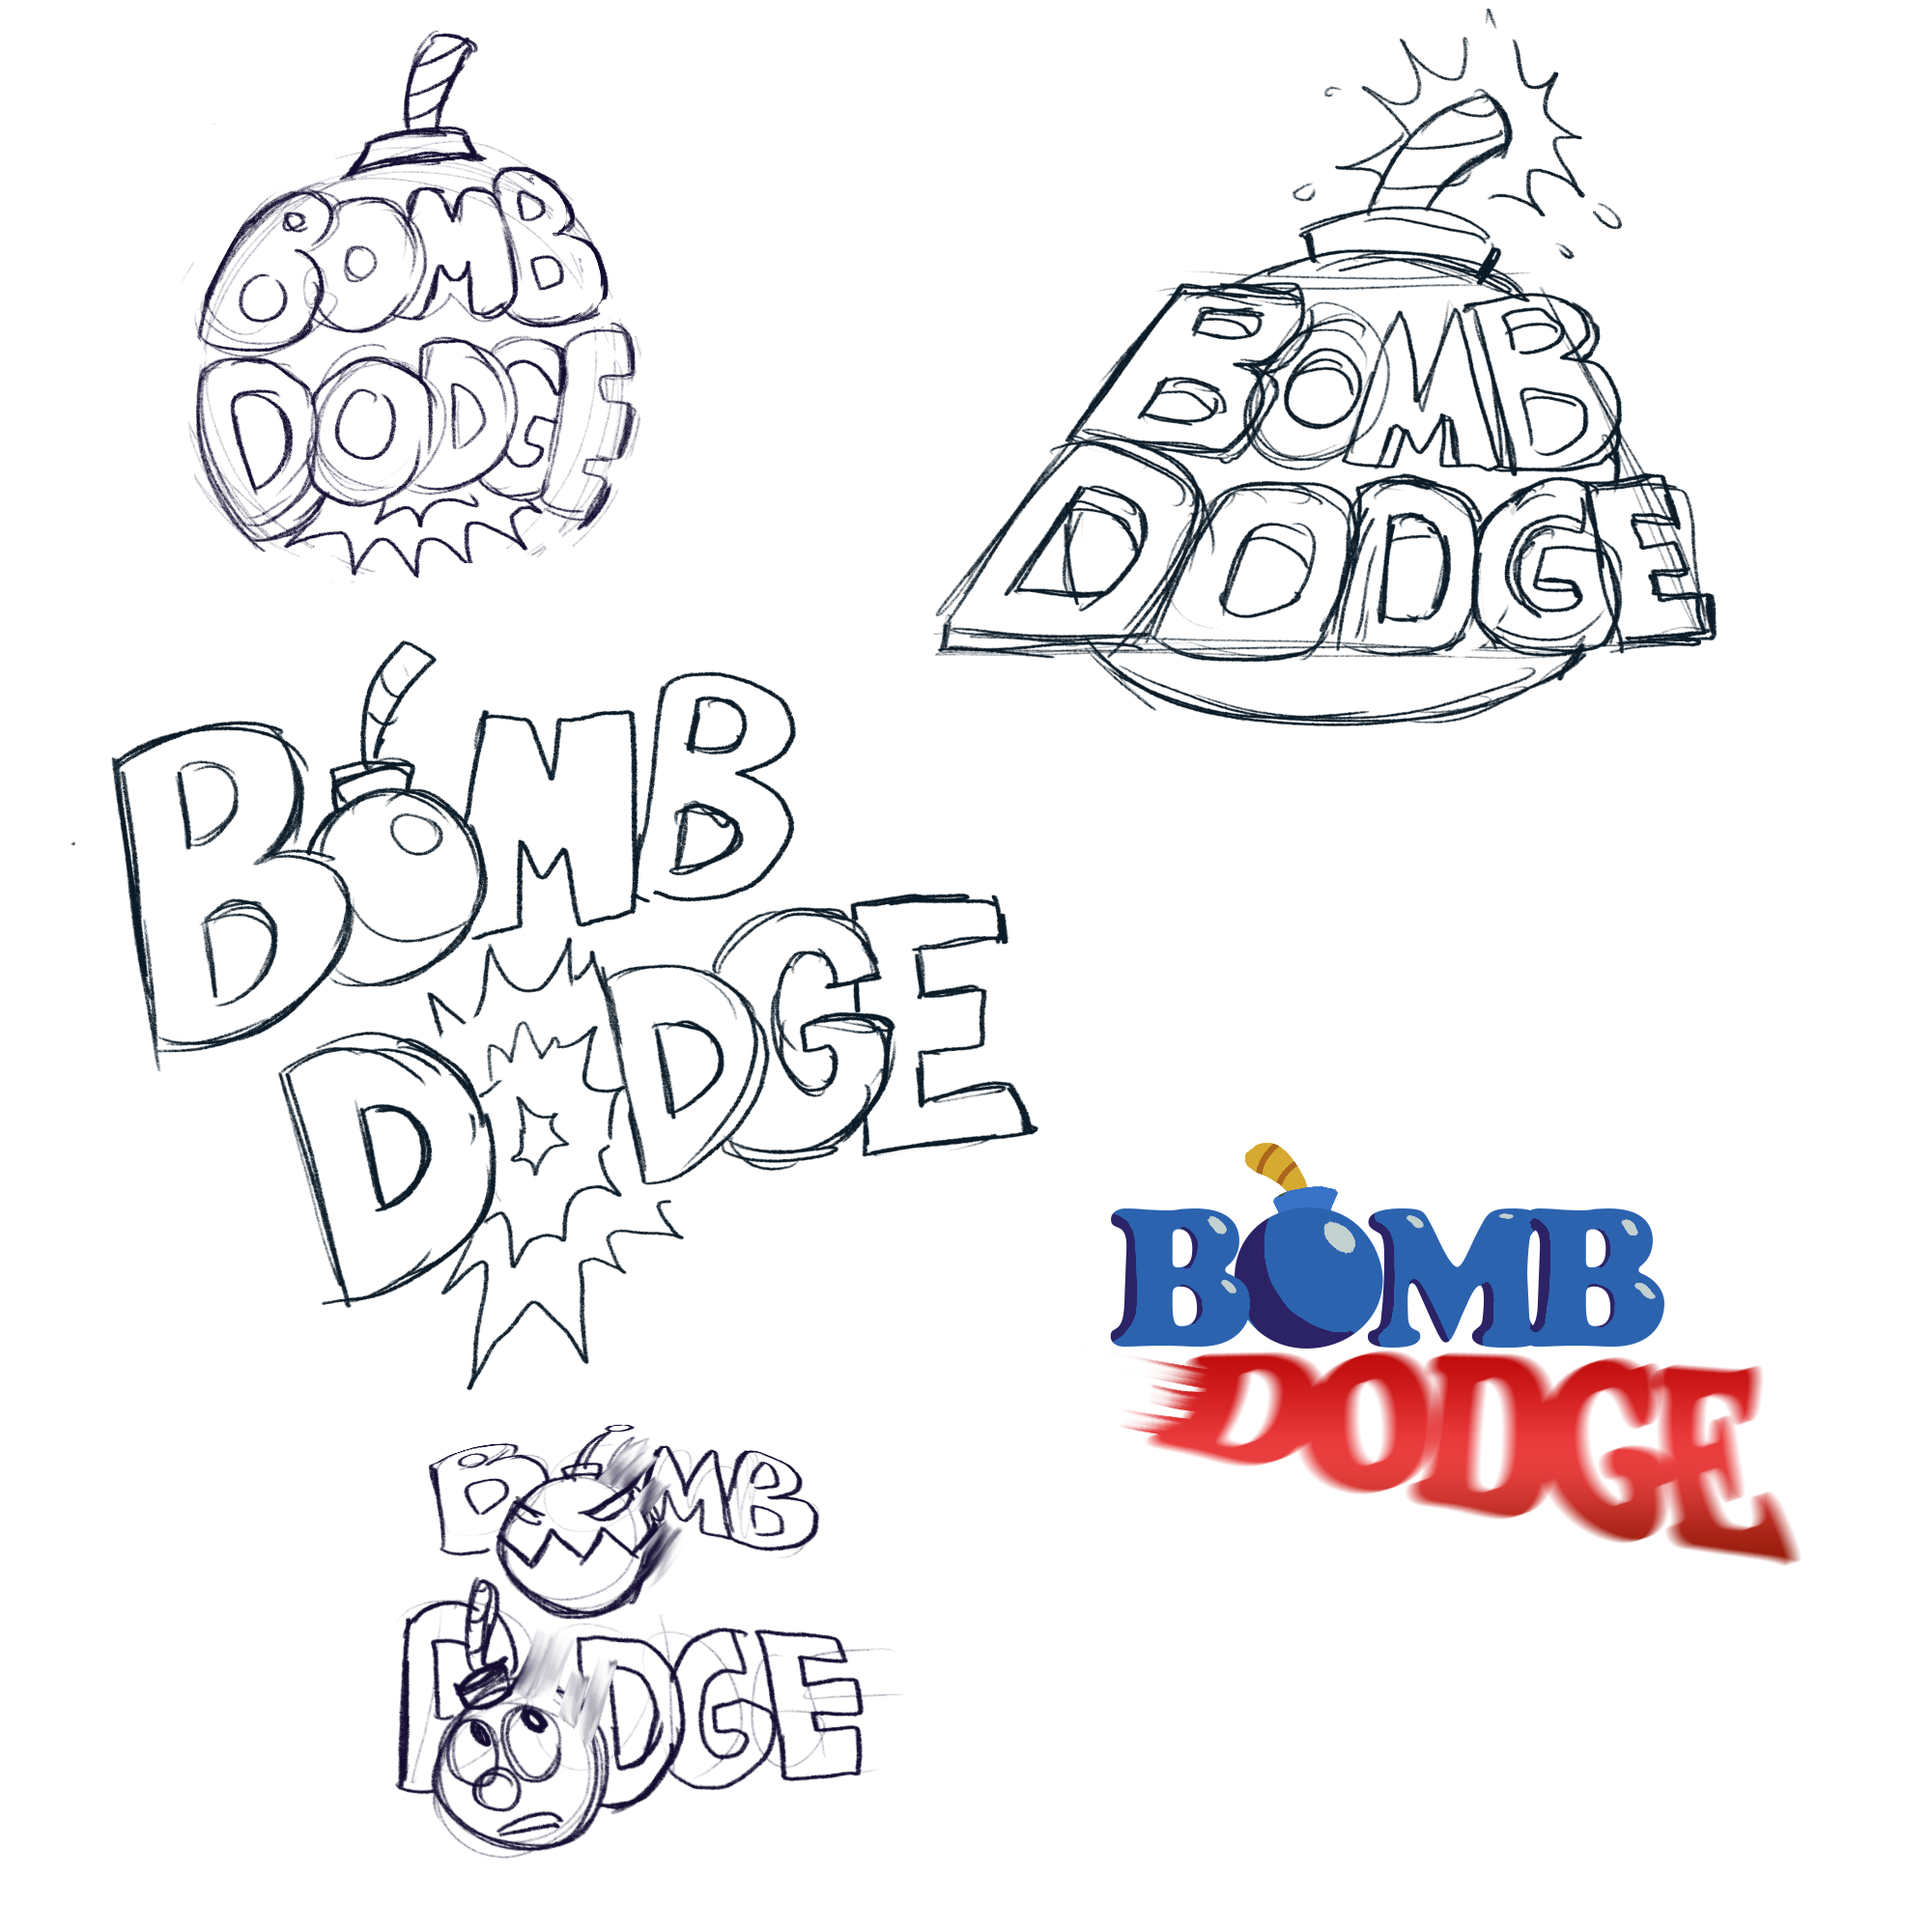 Bomb Dodge concept logos by  Andrea Dailey